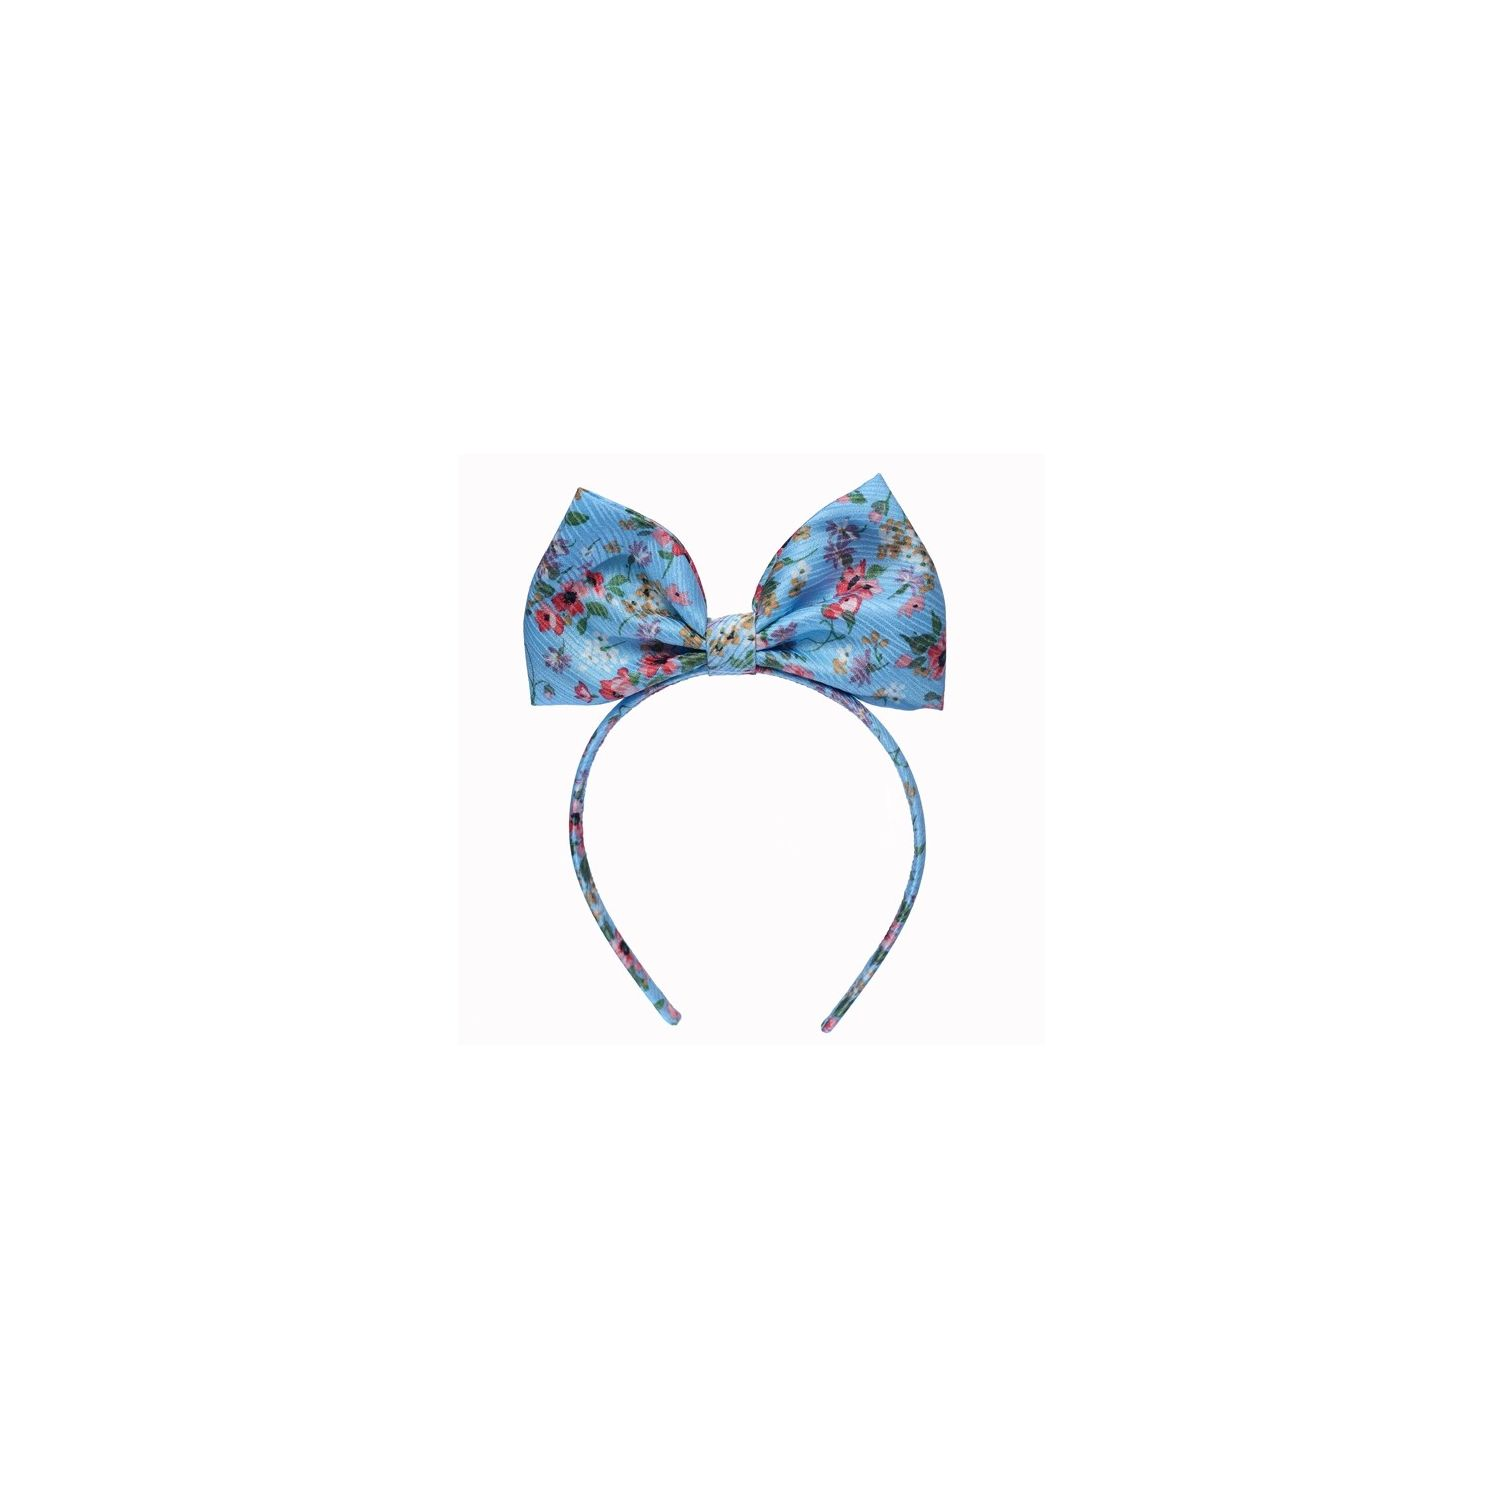 Turquoise and Cherry flowers silk bowed headband